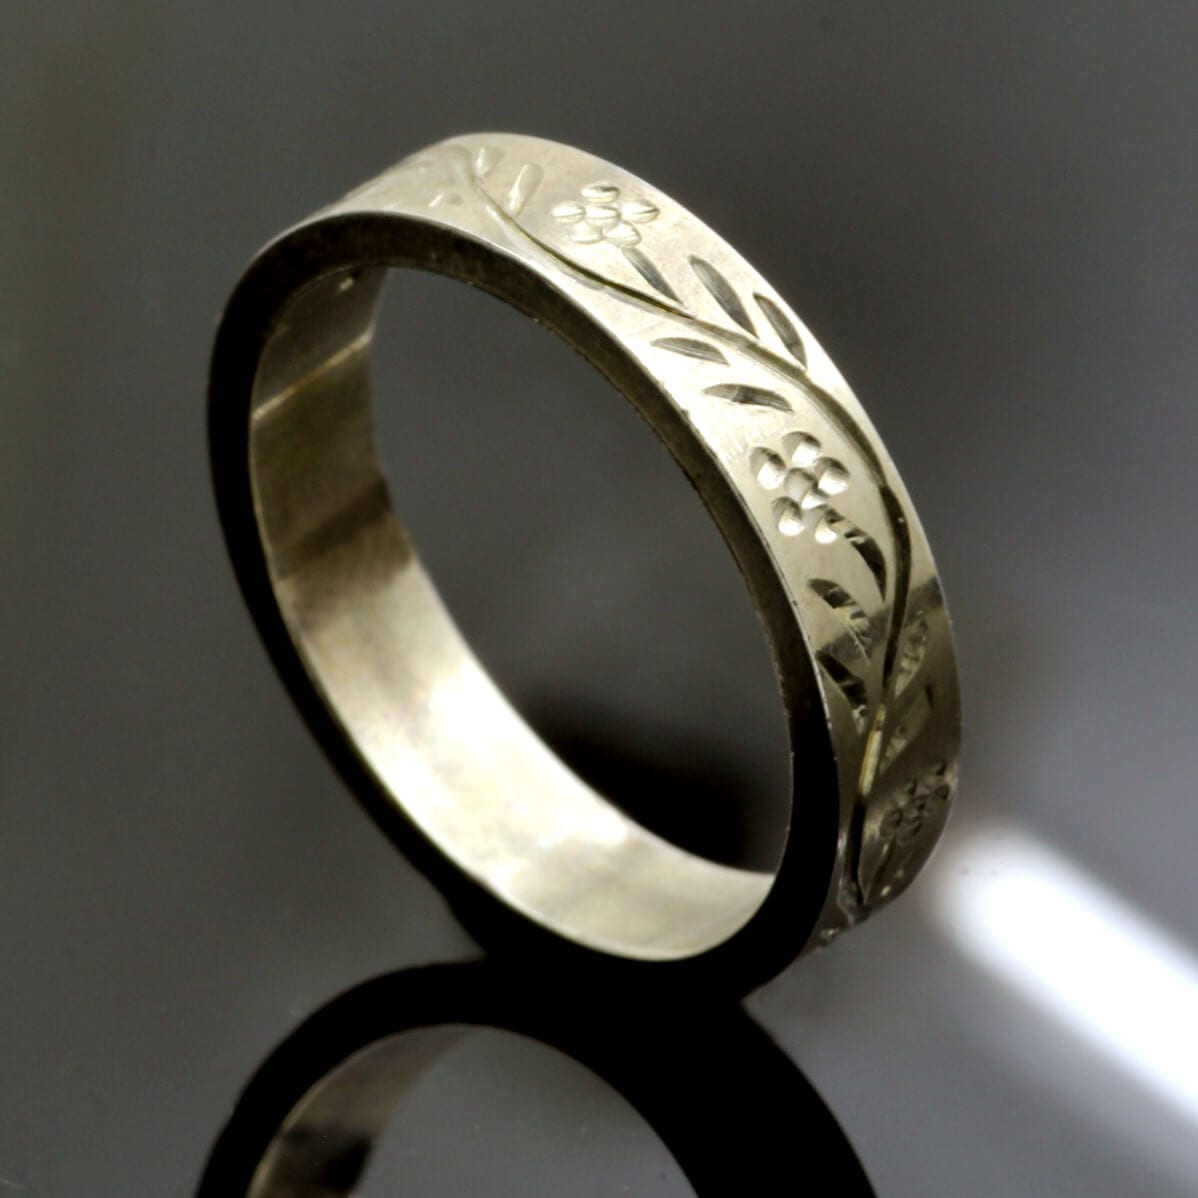 Hand engraved solid sterling silver modern flat ring